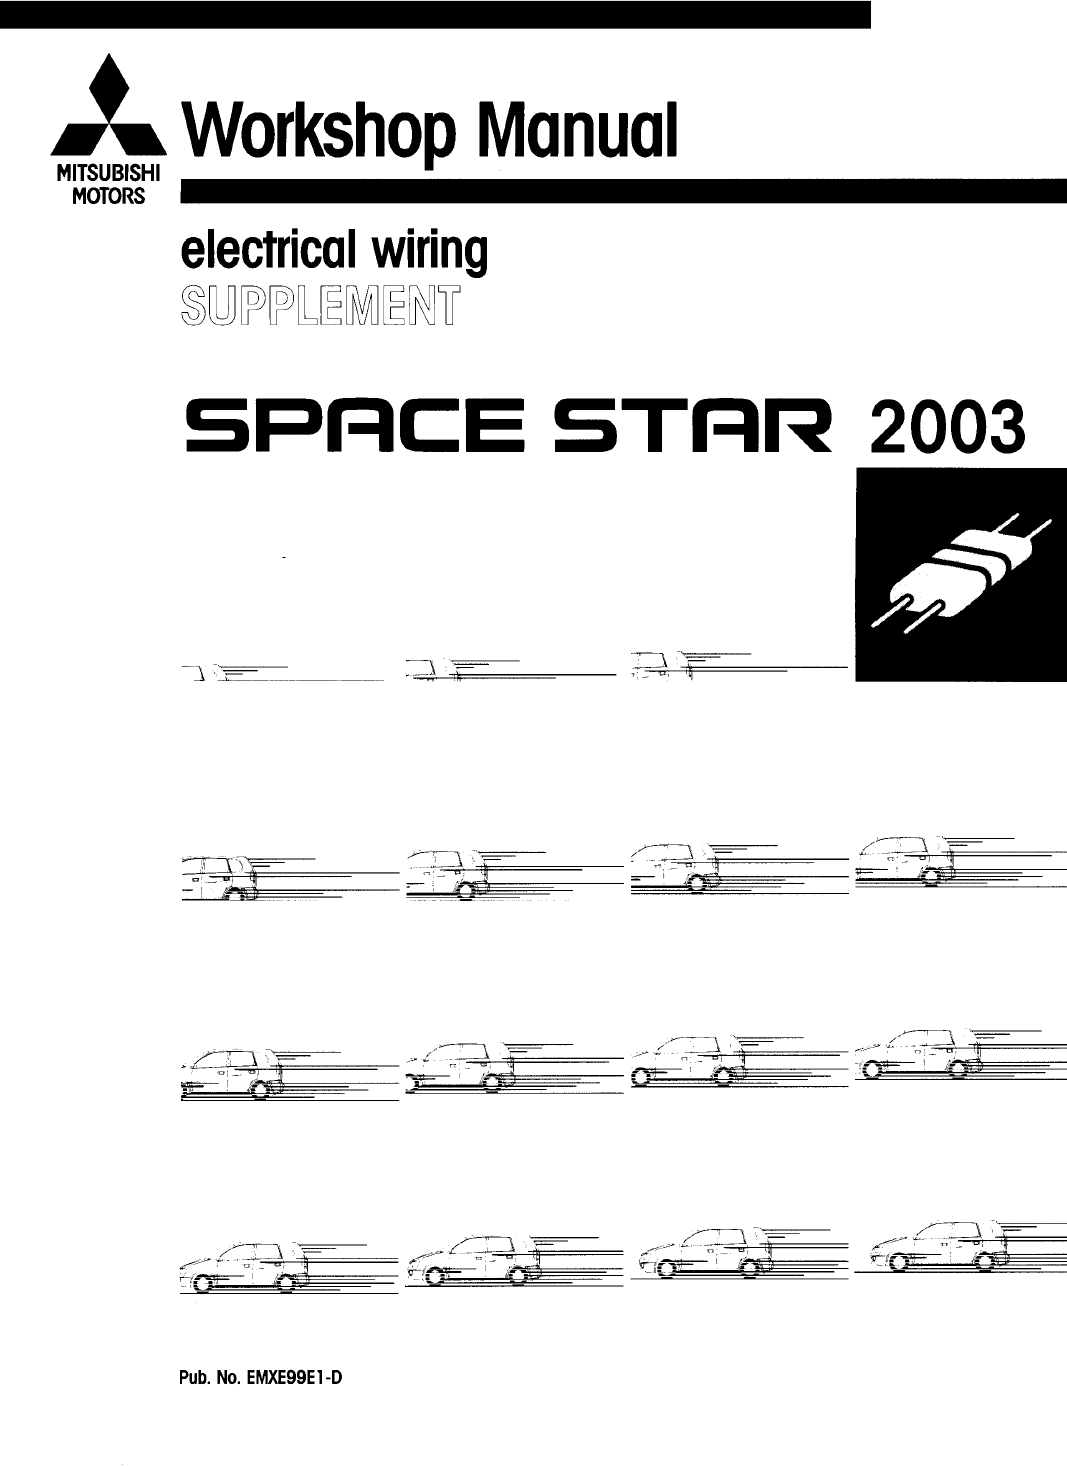 See our other Mitsubishi Space Star Manuals: